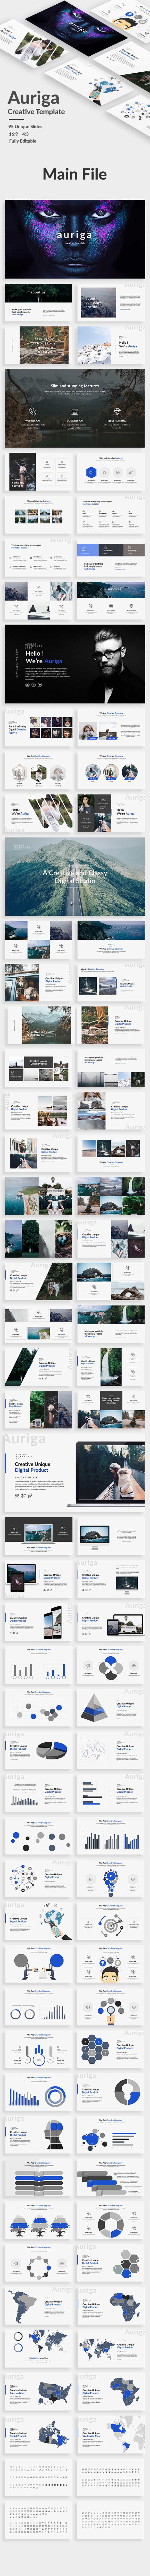 Auriga Creative Keynote Template